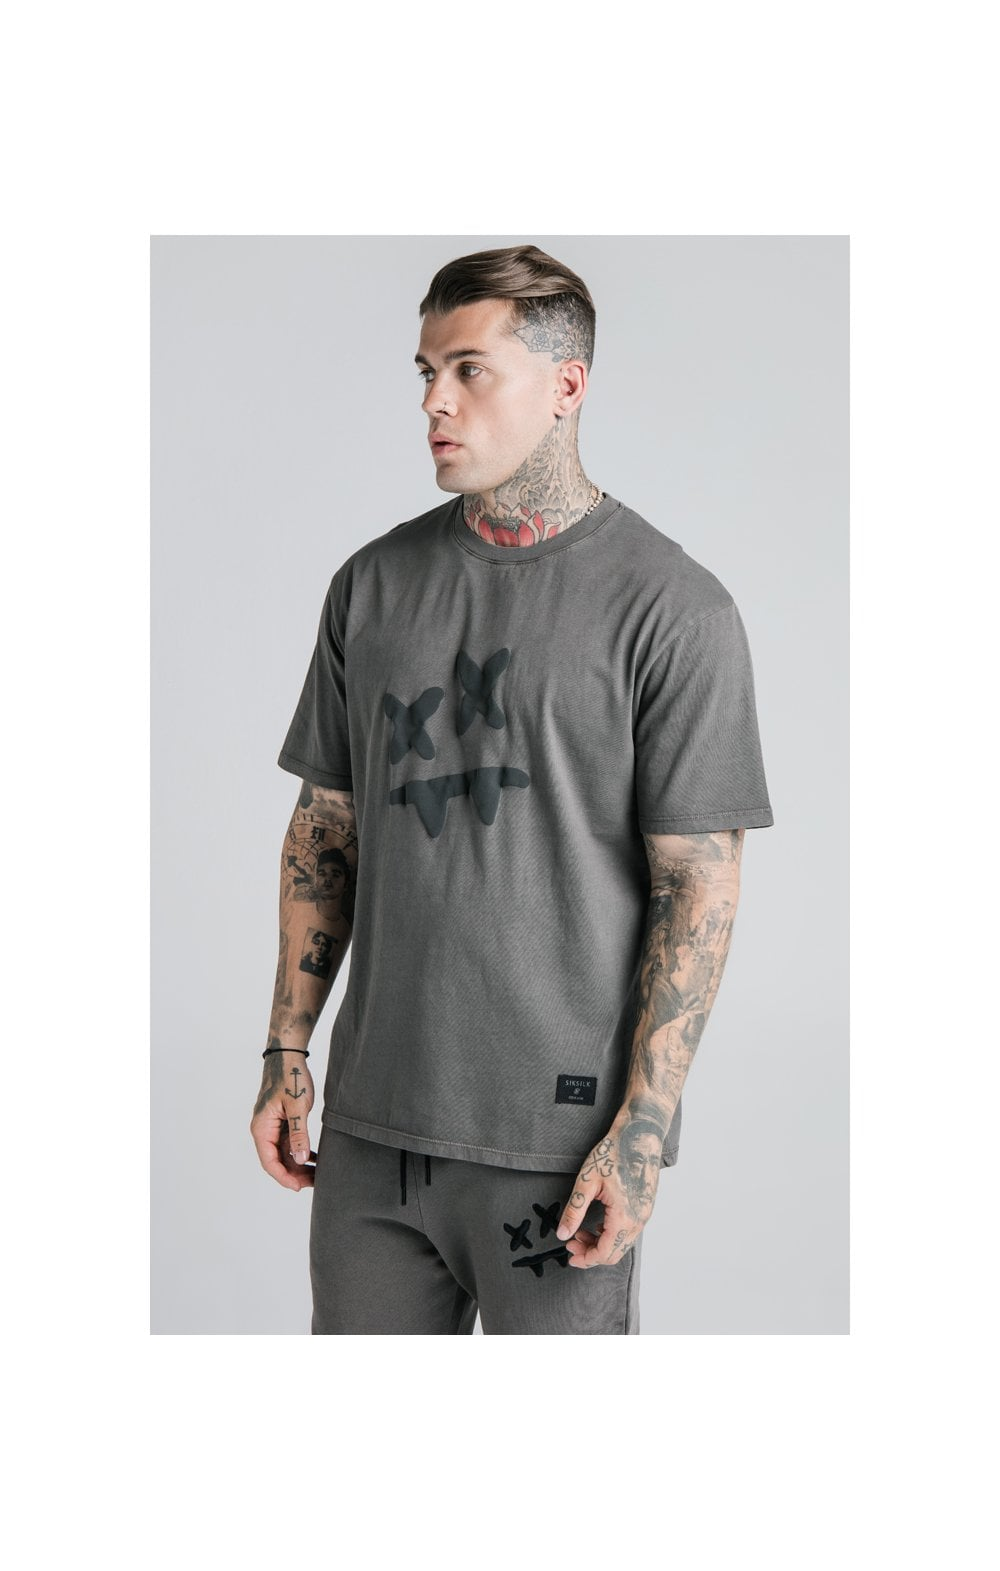 SikSilk X Steve Aoki S/S Oversize Essential Tee – Washed Grey (1)